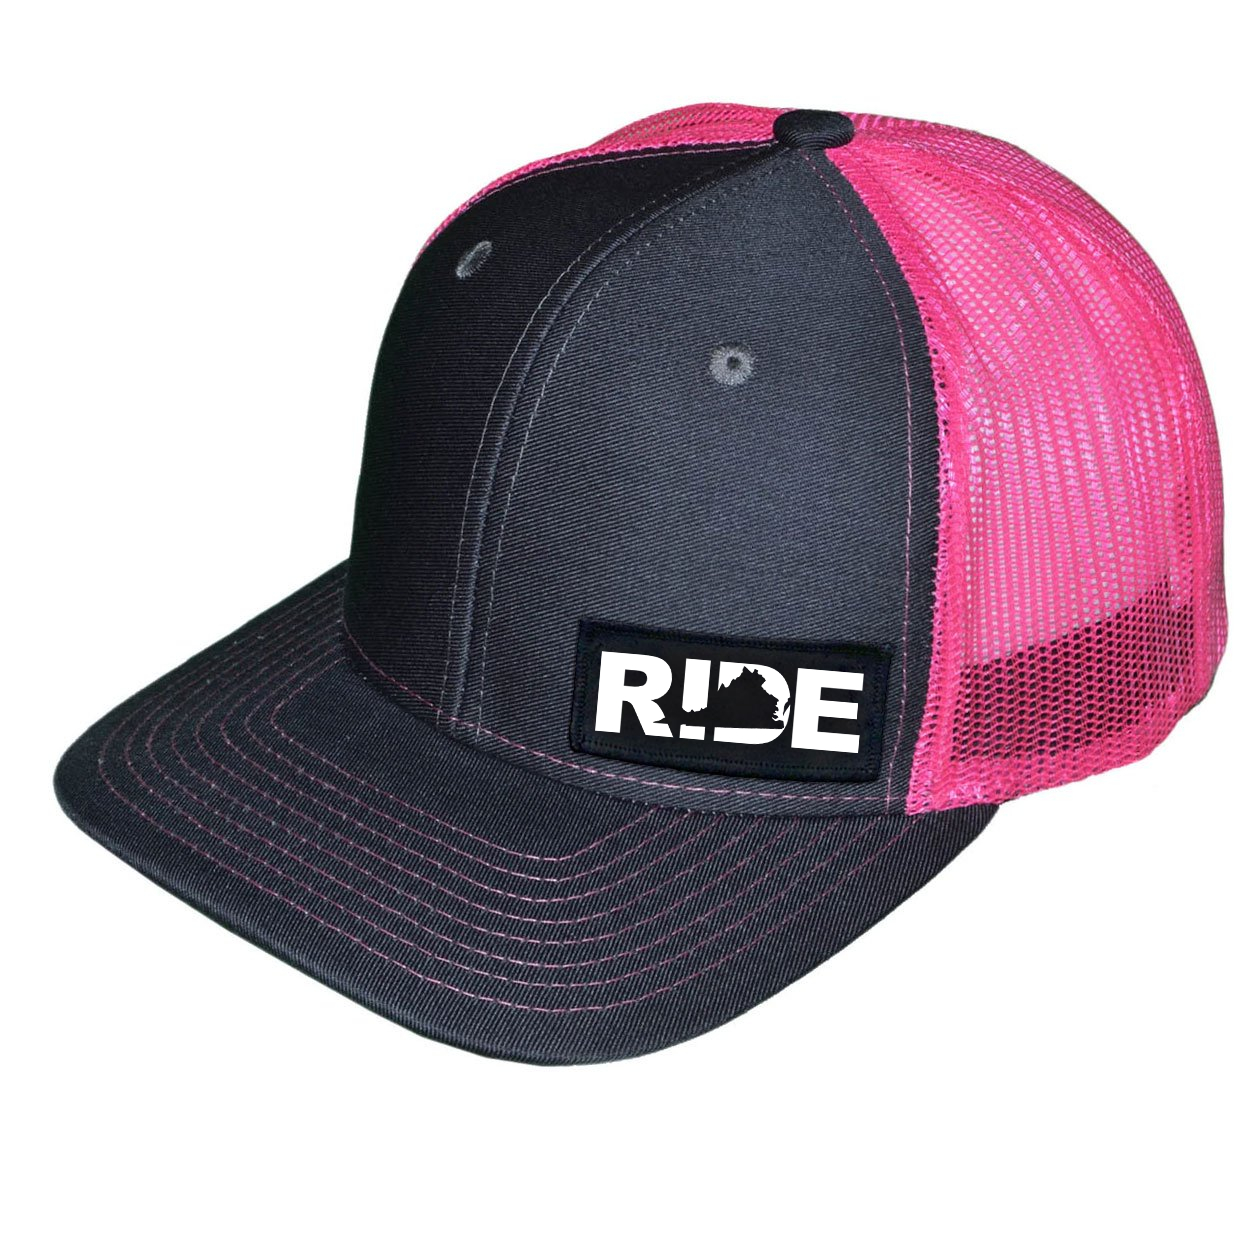 Ride Virginia Night Out Woven Patch Snapback Trucker Hat Dark Gray/Neon Pink (White Logo)